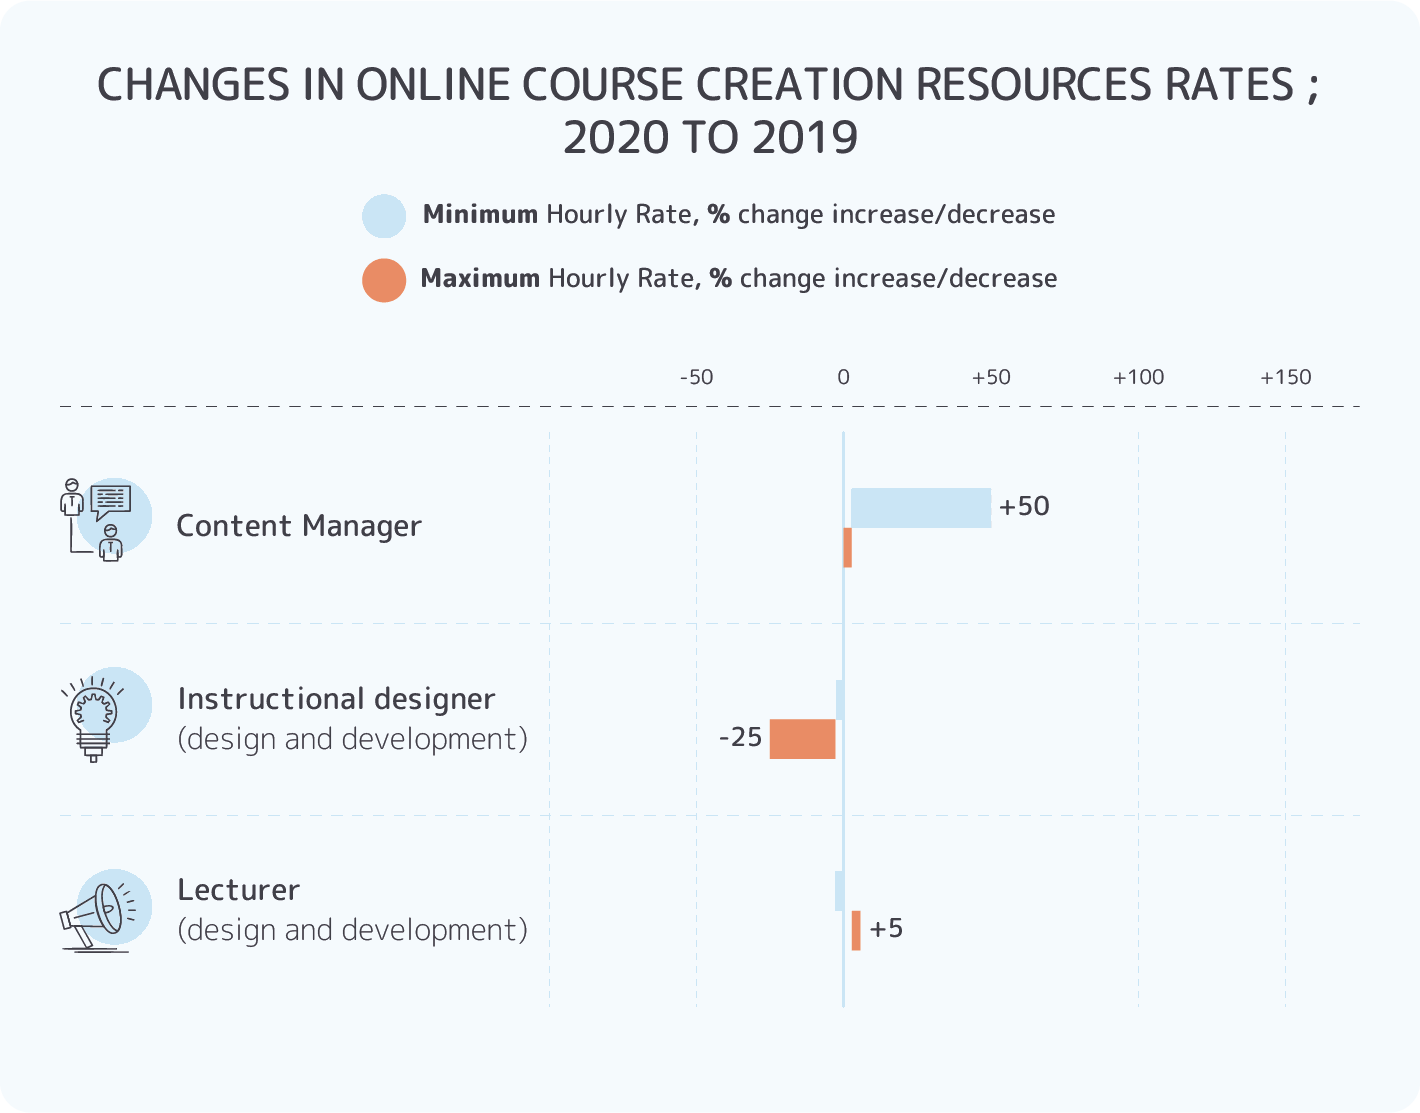 How Much Does It Cost To Develop An Online Course In 2020